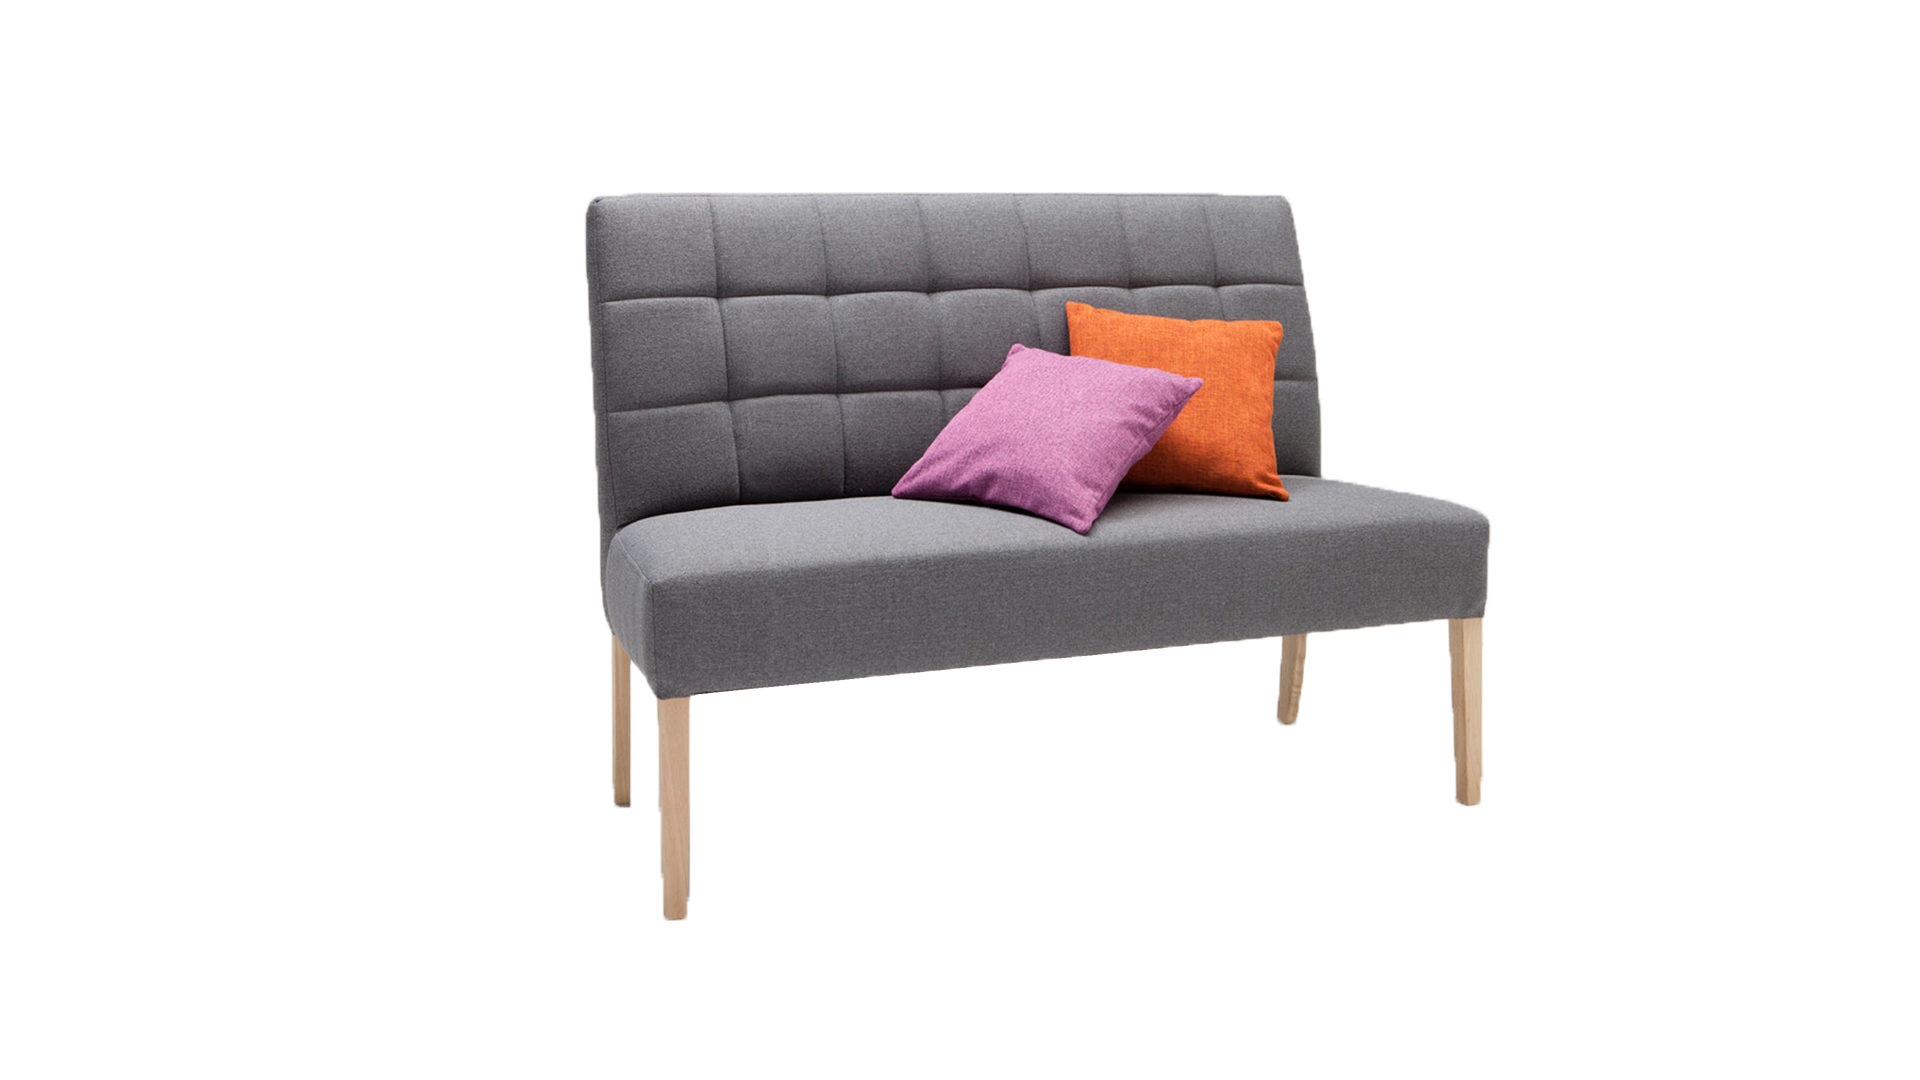 Trendwerk by Möbel Busch, Couches + Sofas, Couches, KAWOO, KAWOO ...